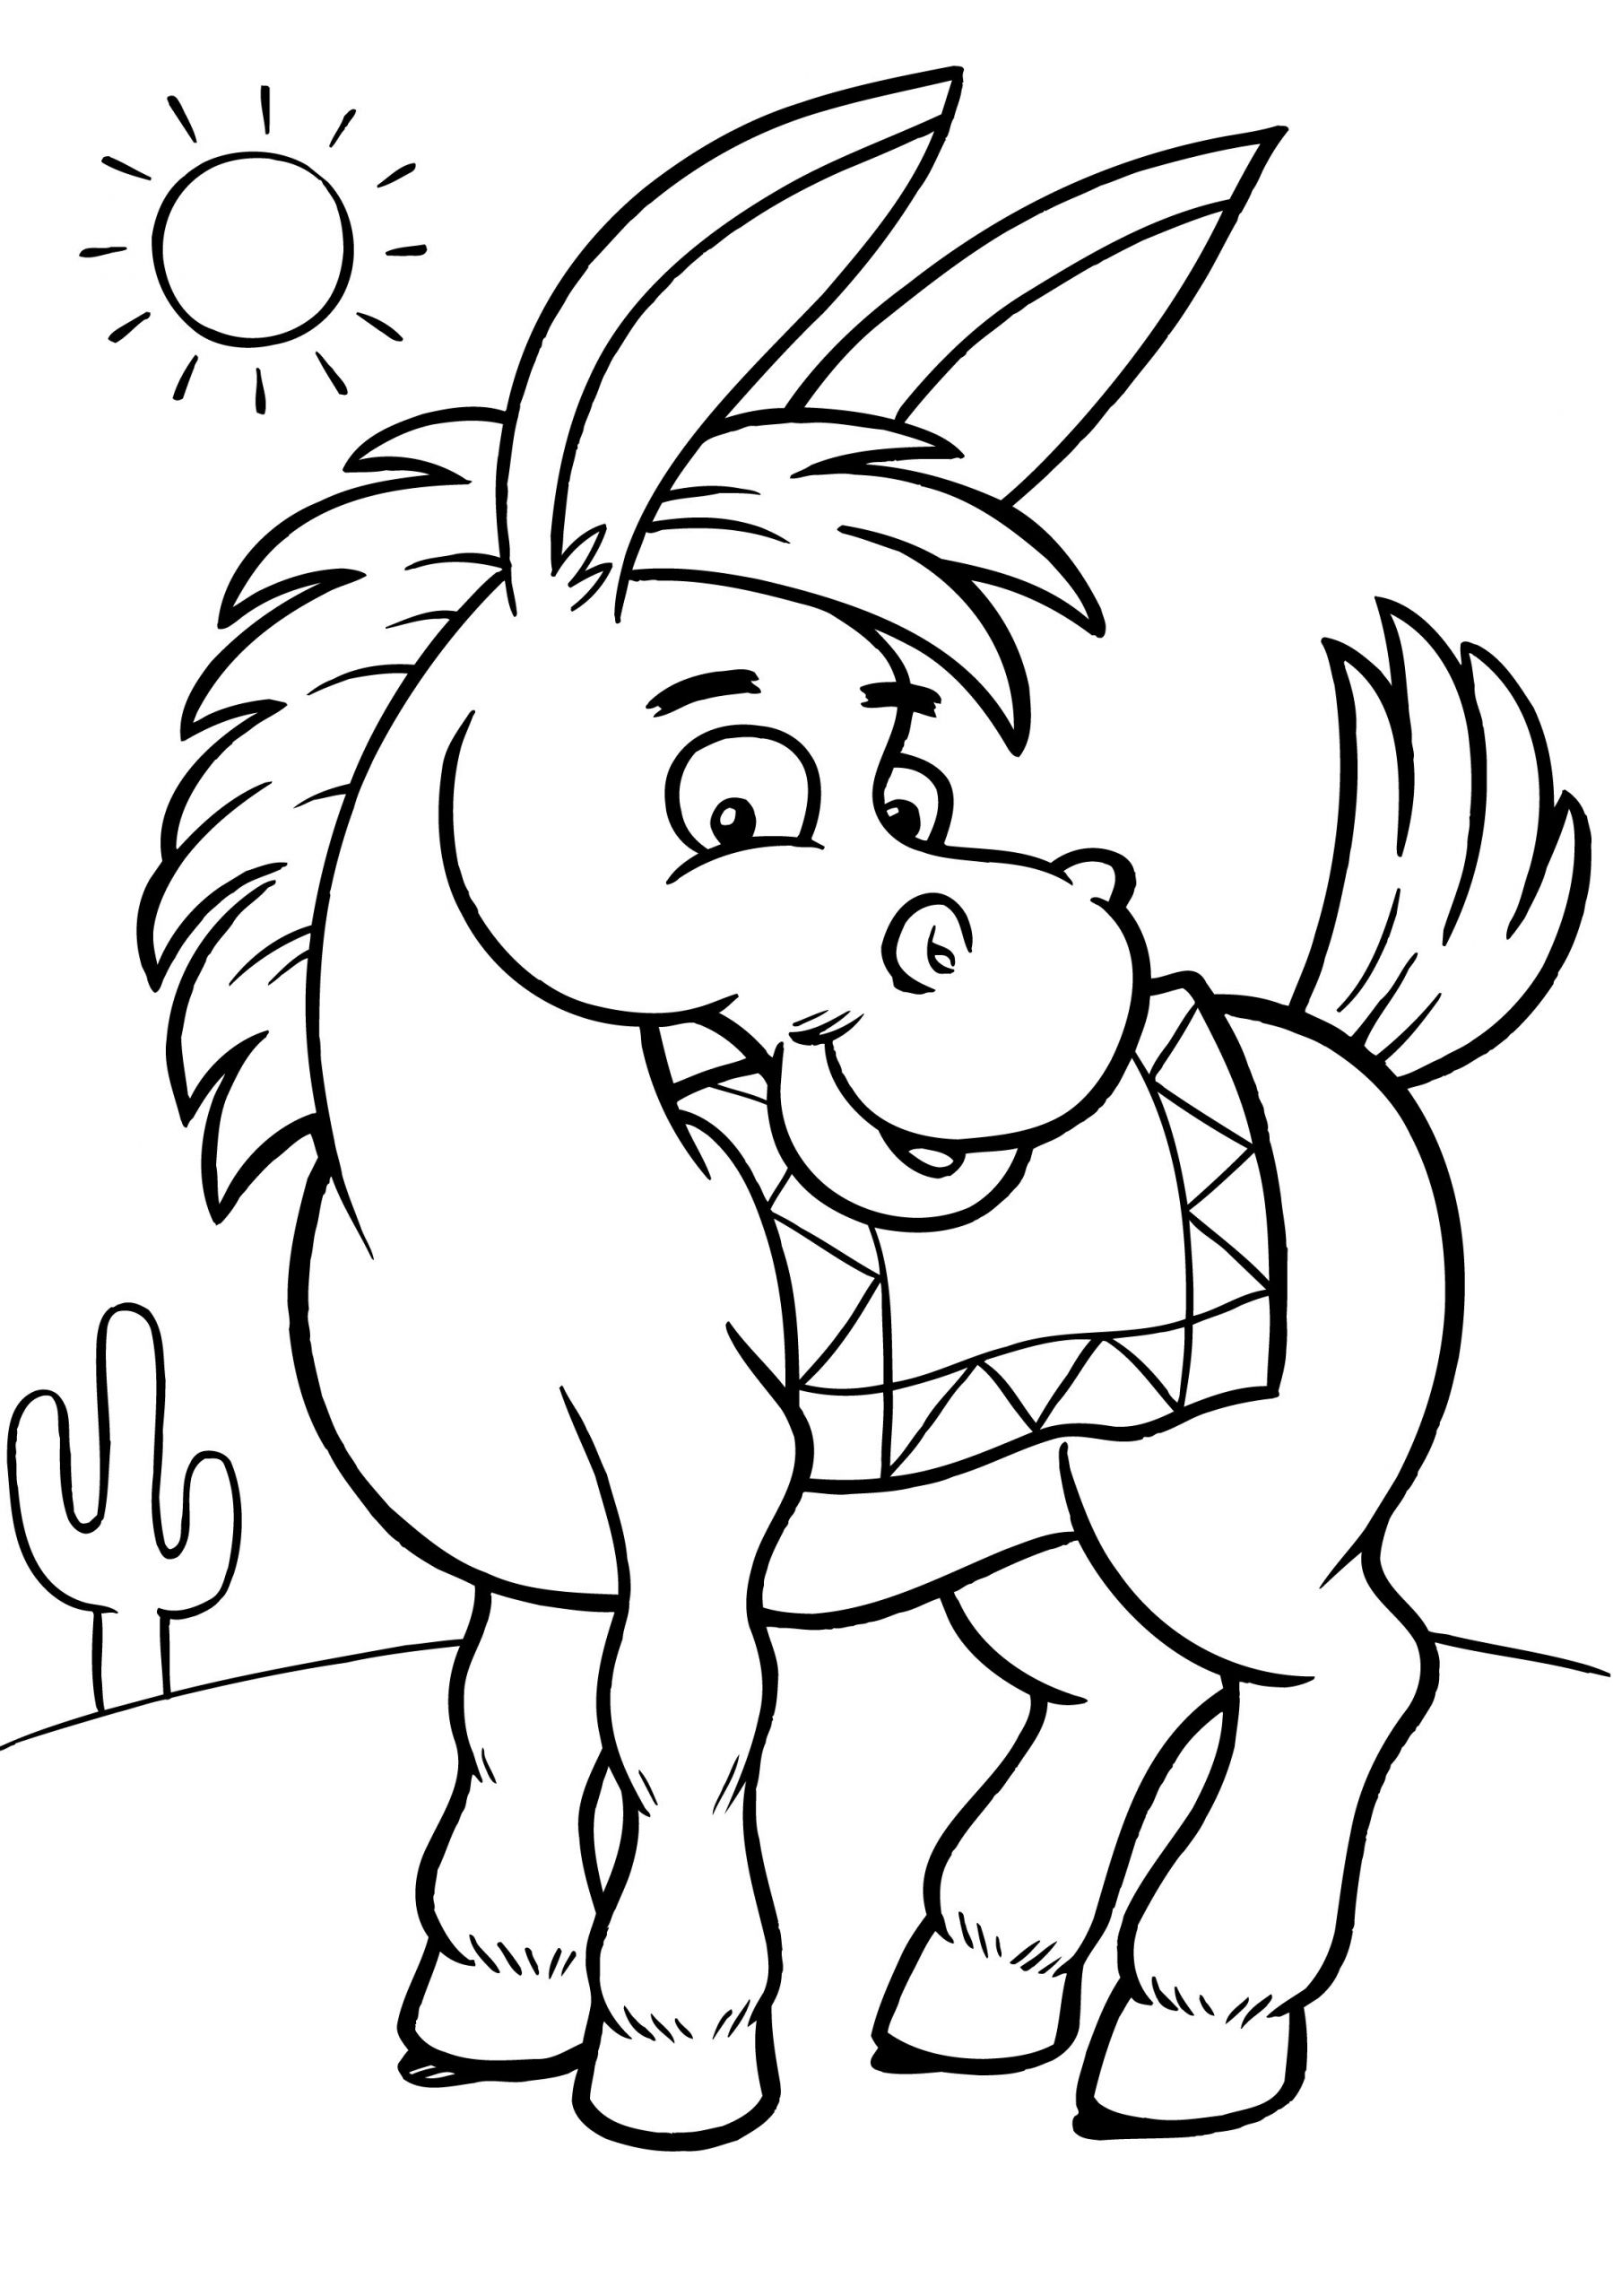 Kids Free Coloring Pages  Free Printable Donkey Coloring Pages For Kids